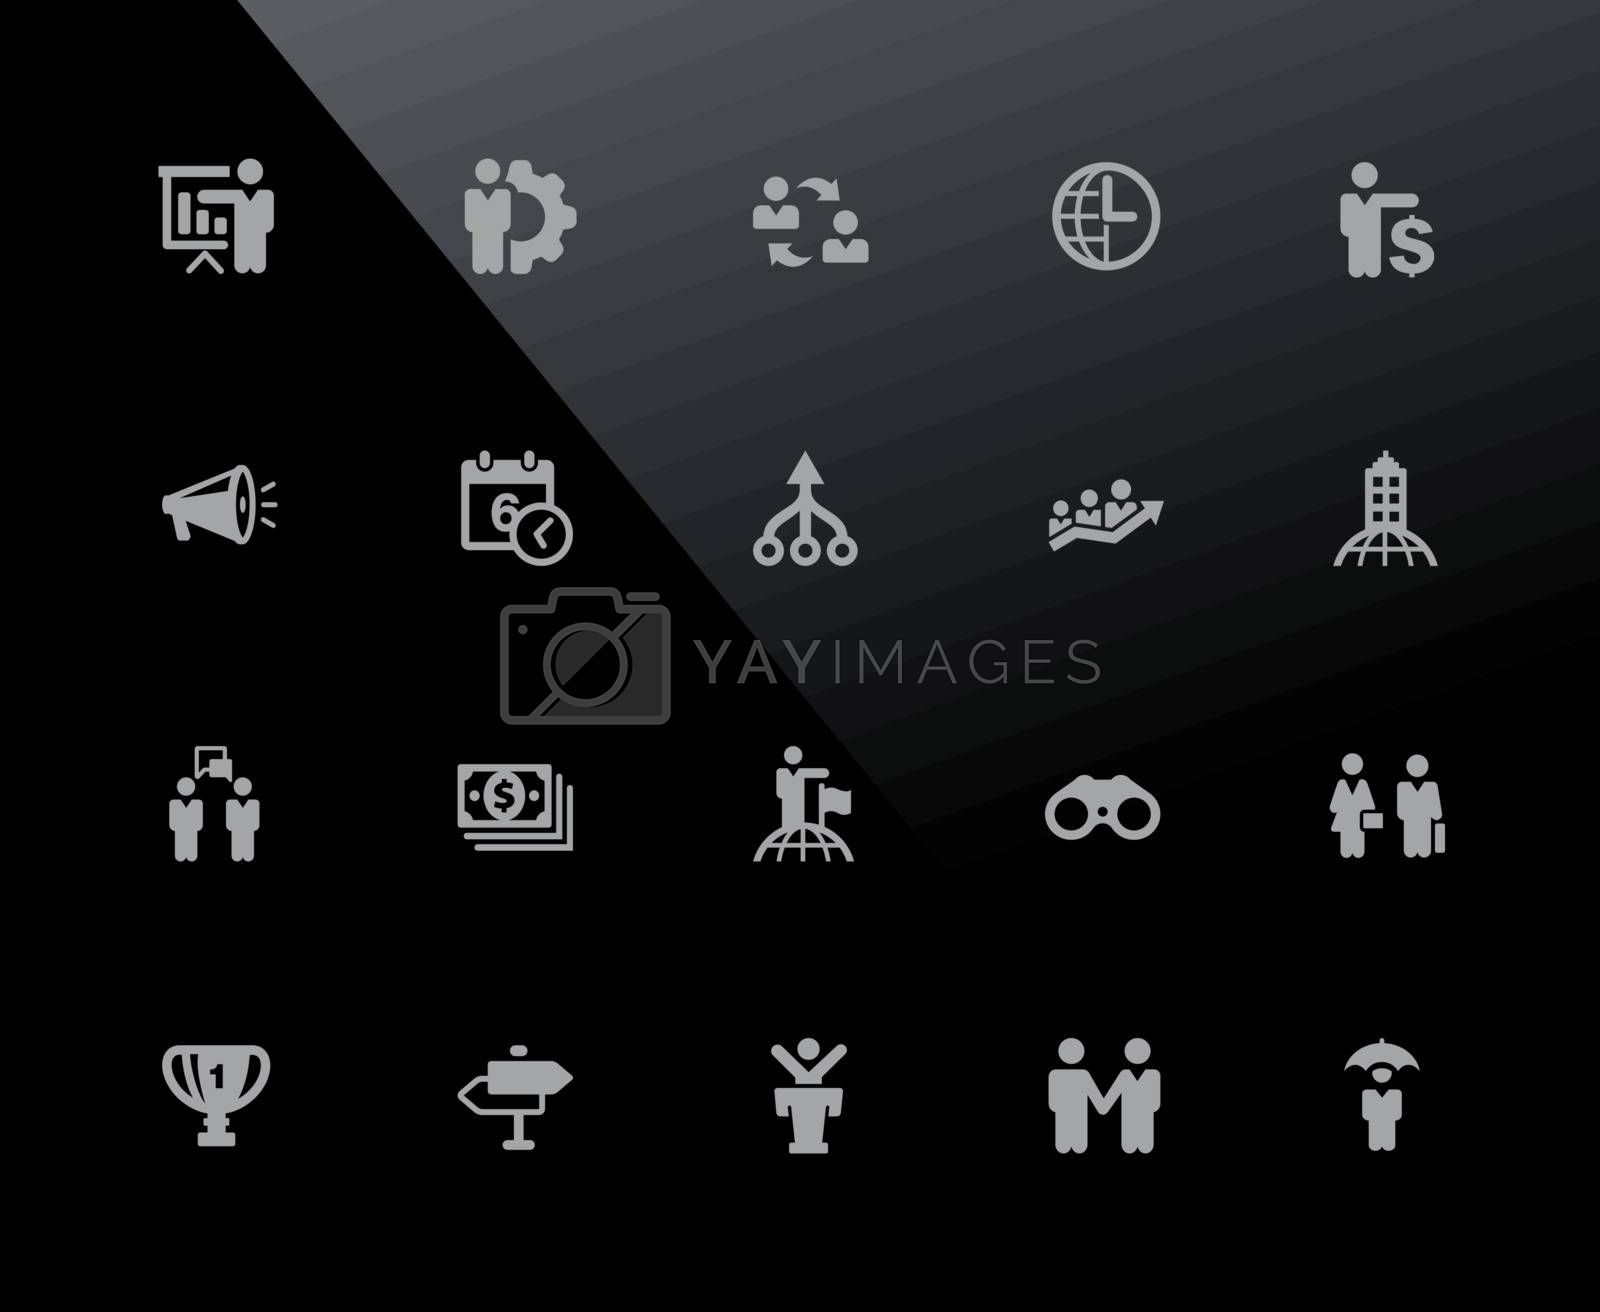 Vector icons adjusted to work in a 32 pixel grid.